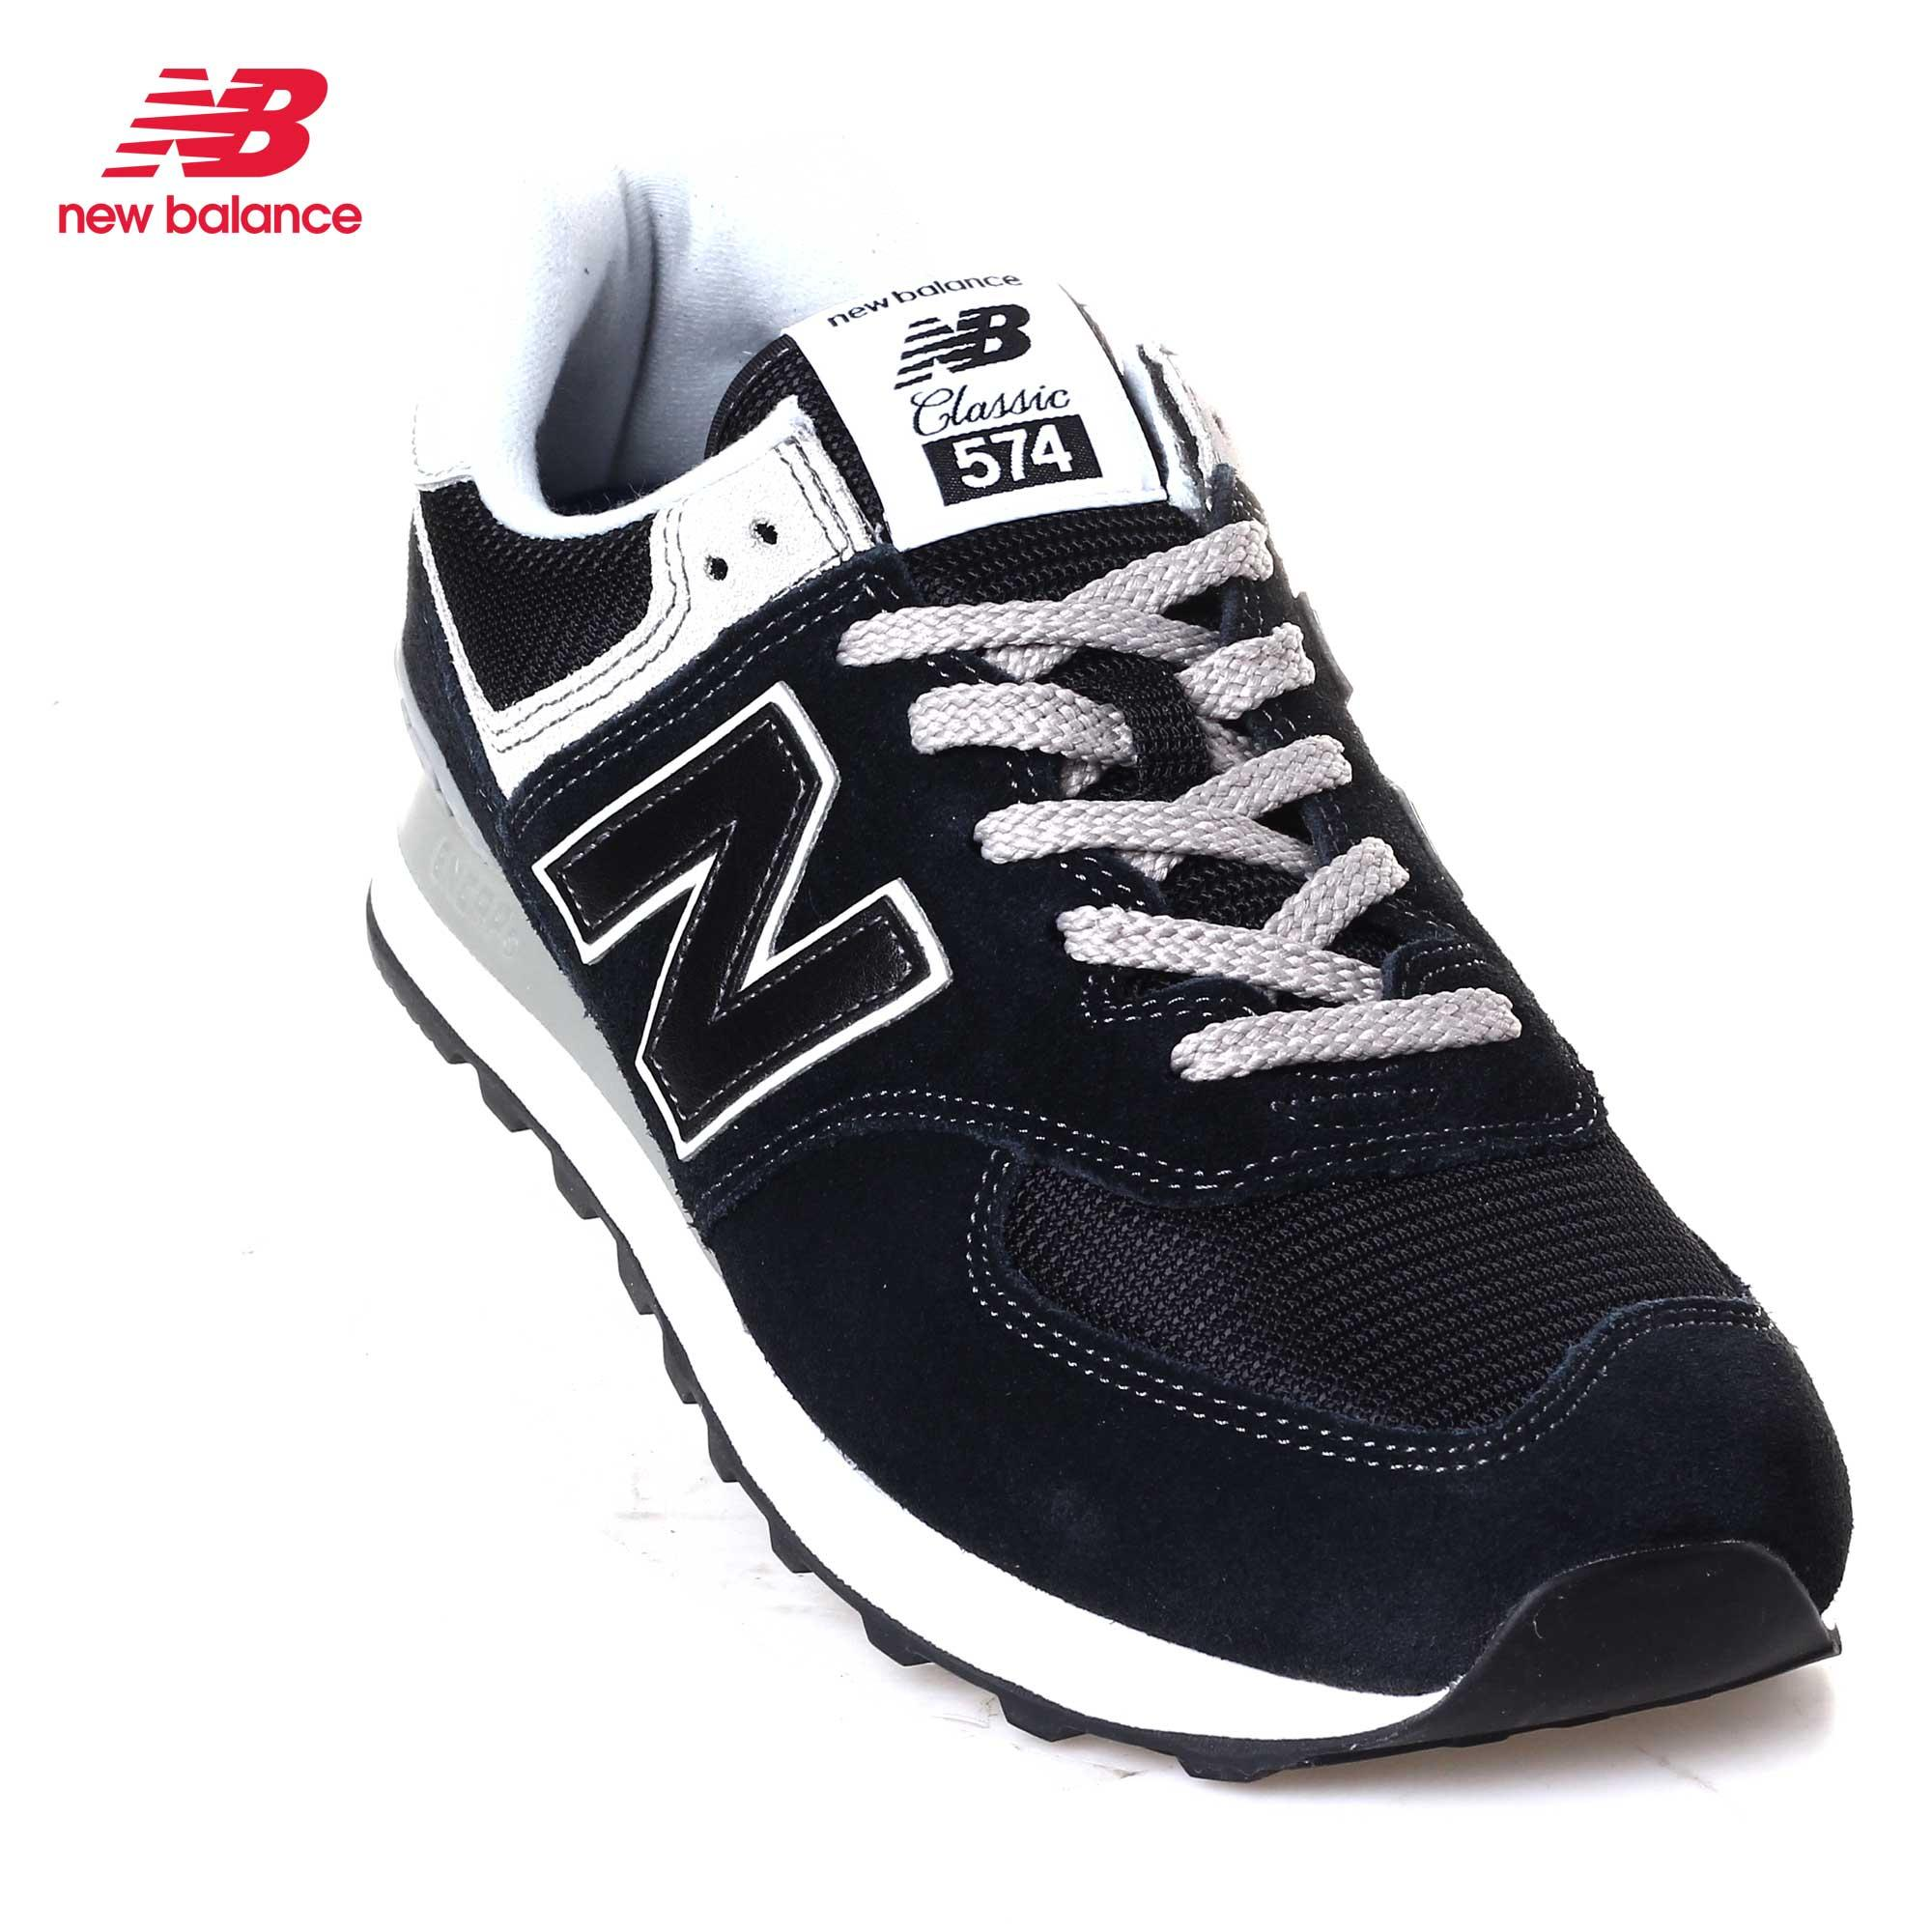 121226208 New Balance Philippines -New Balance Shoes for Men for sale - prices ...